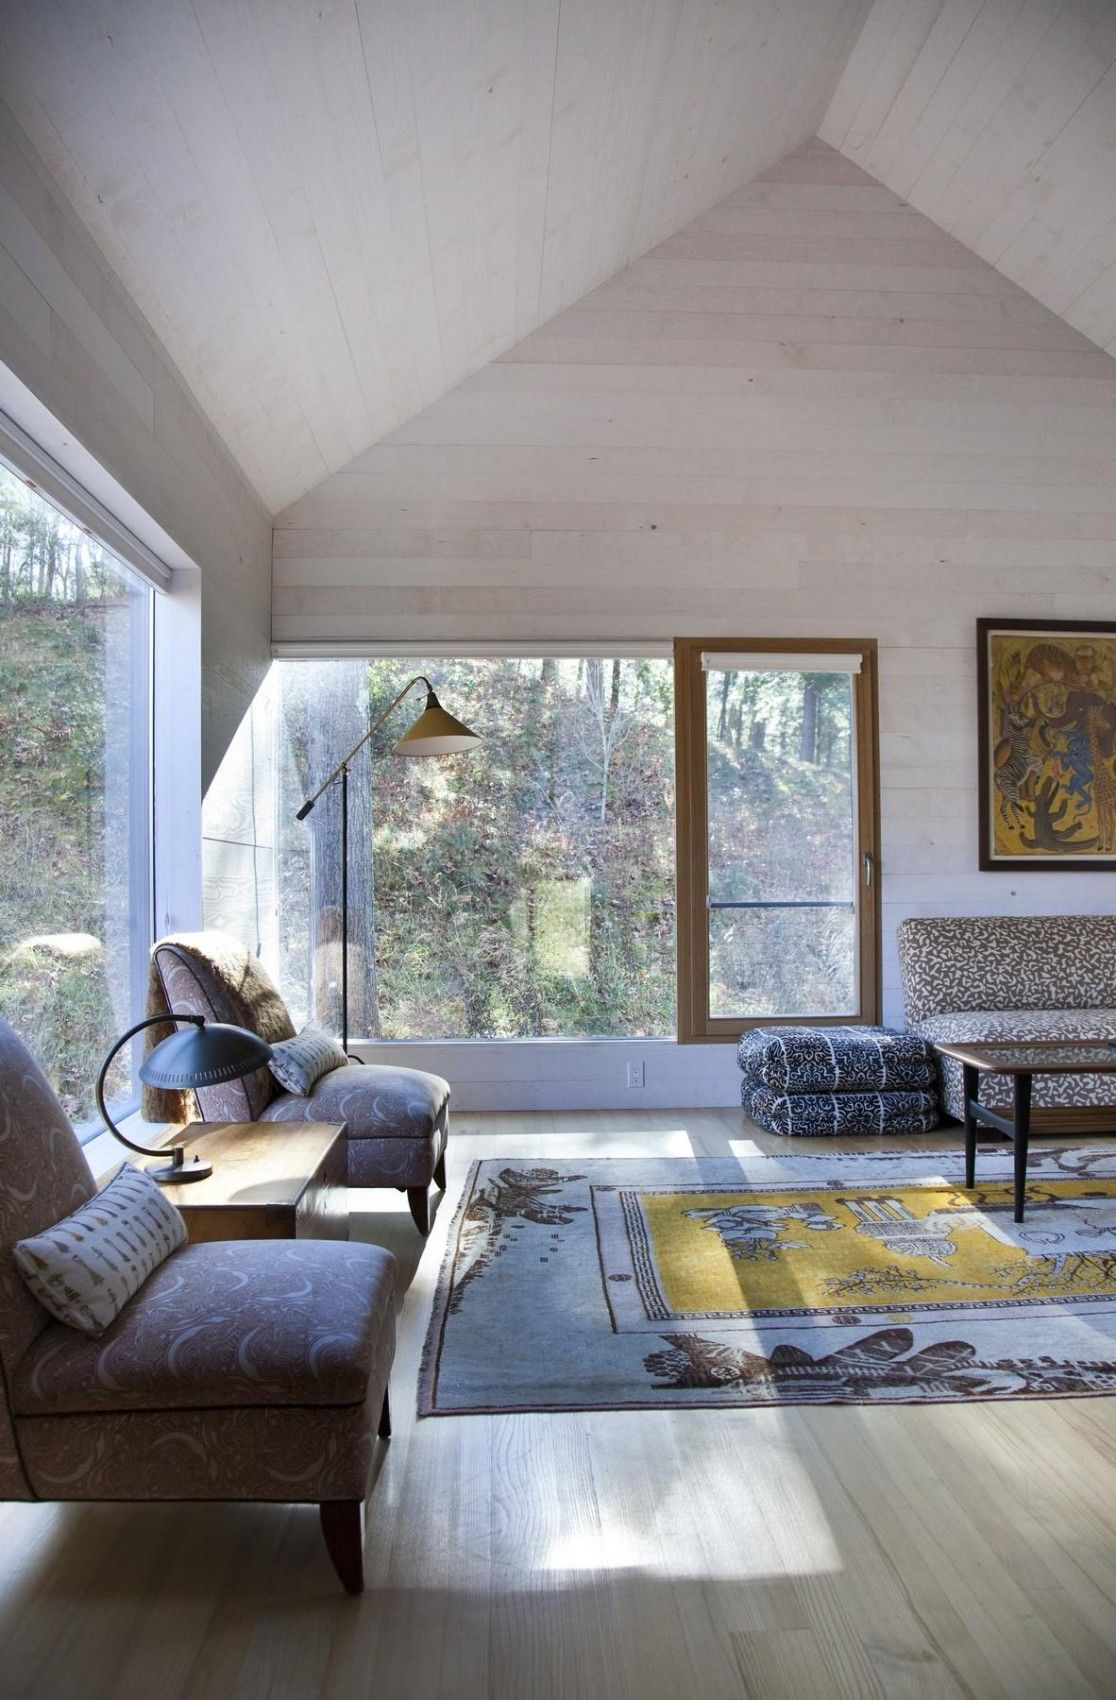 Home interior wall design rural weekend retreat with gable structures depot house  houses